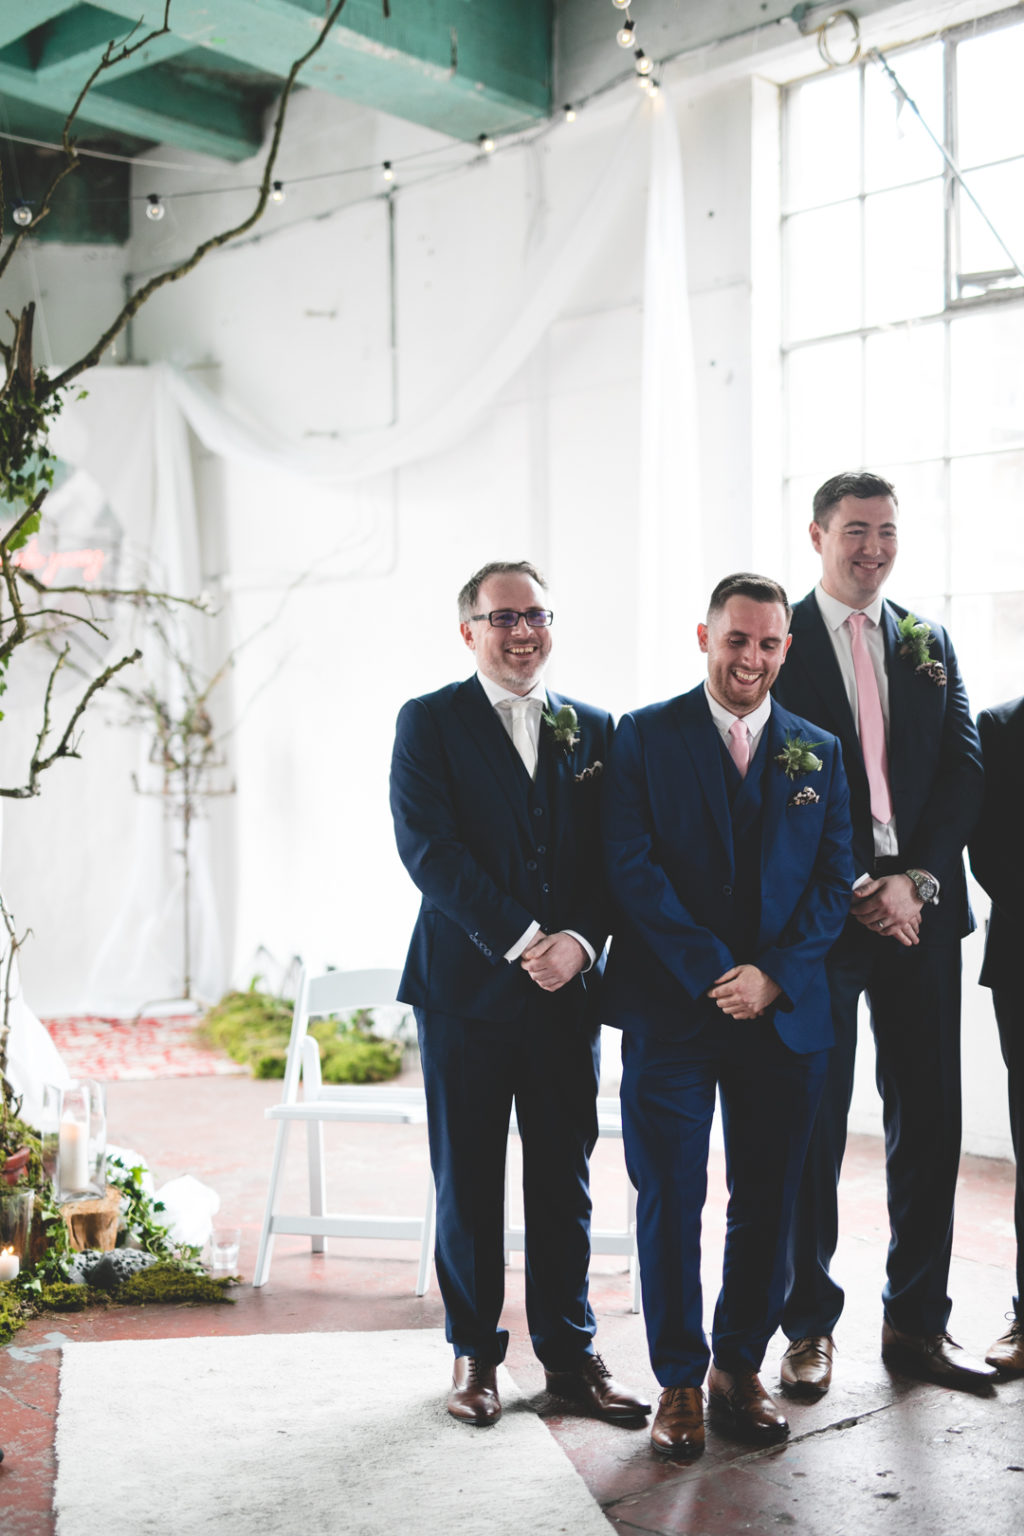 The groom and groomsmen were wearing blue and navy three piece suits with various ties